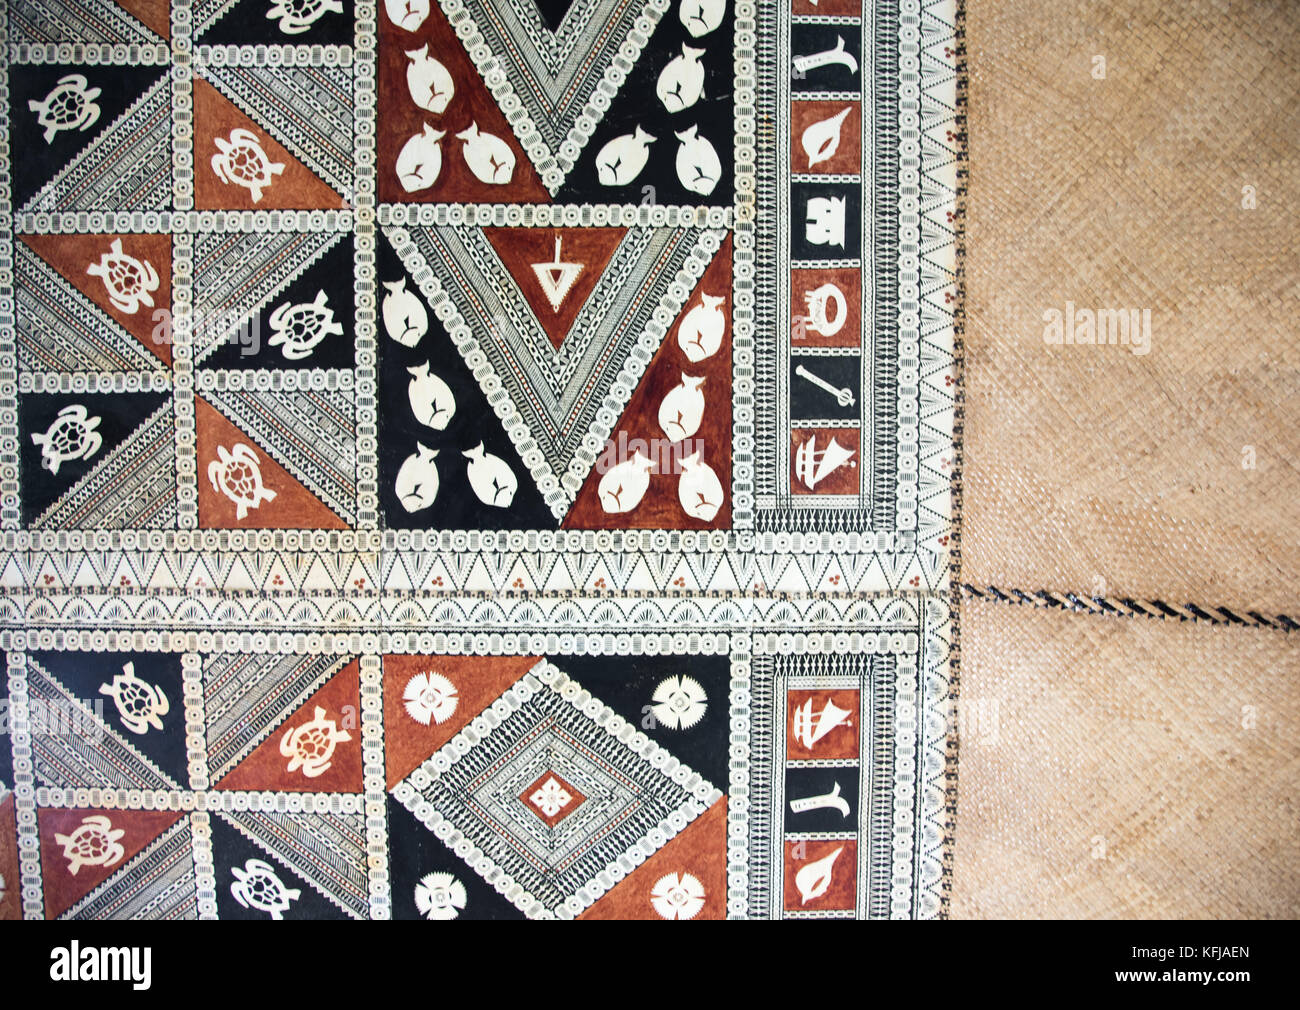 Woven textile with painted imagery in detail and repeated patterns from Suva, Fiji - Stock Image